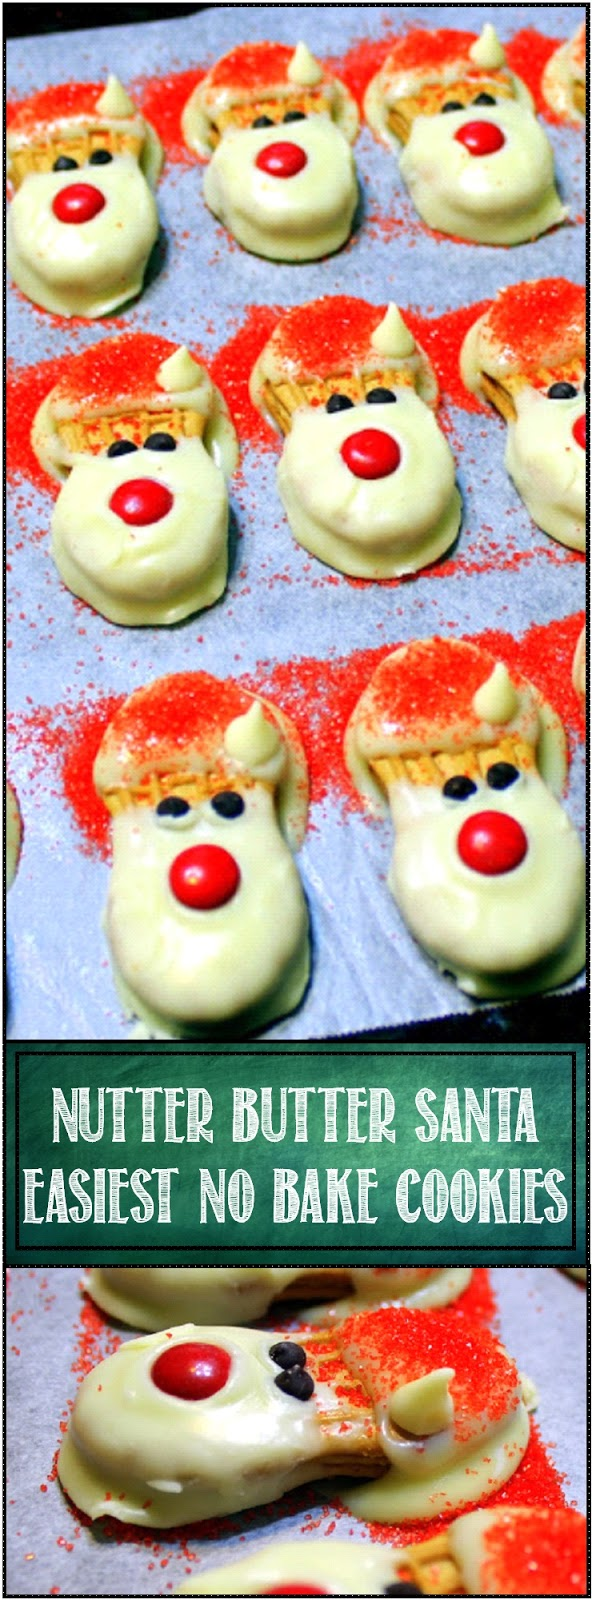 52 Ways to Cook: EASIEST NO BAKE CHRISTMAS COOKIE EVER - Nutter ...